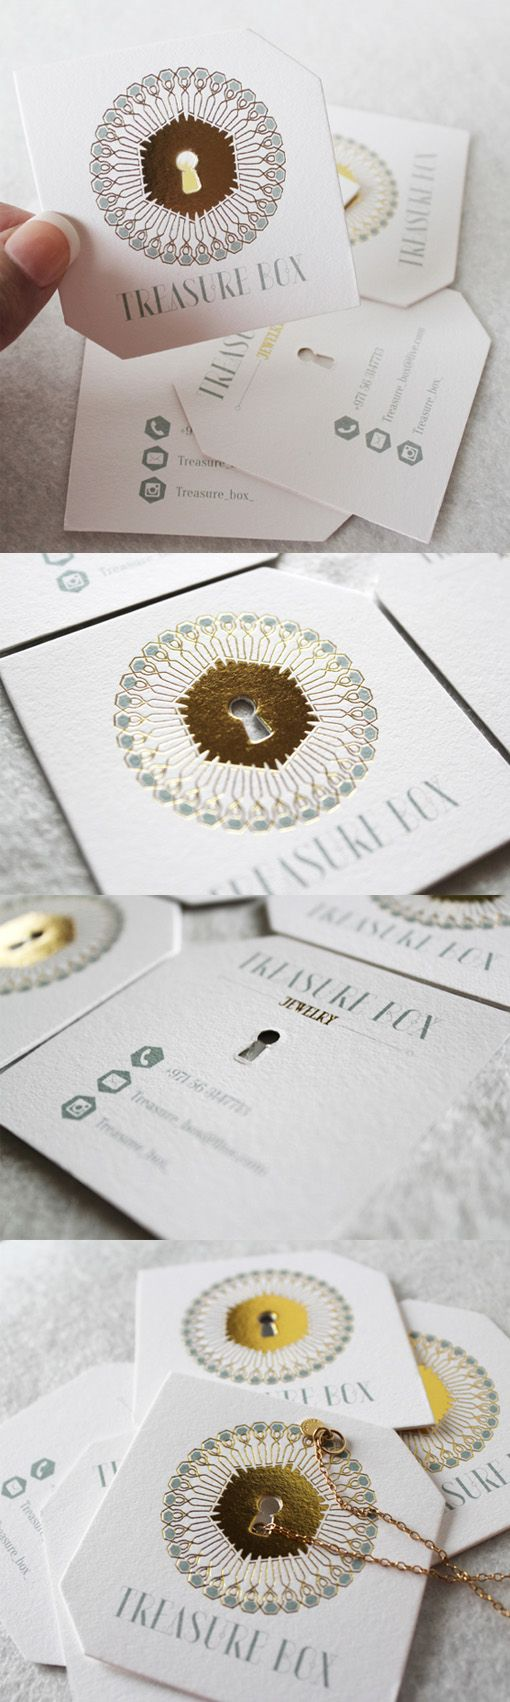 Love the shape - the opposite cut corners | Cards Designs ...